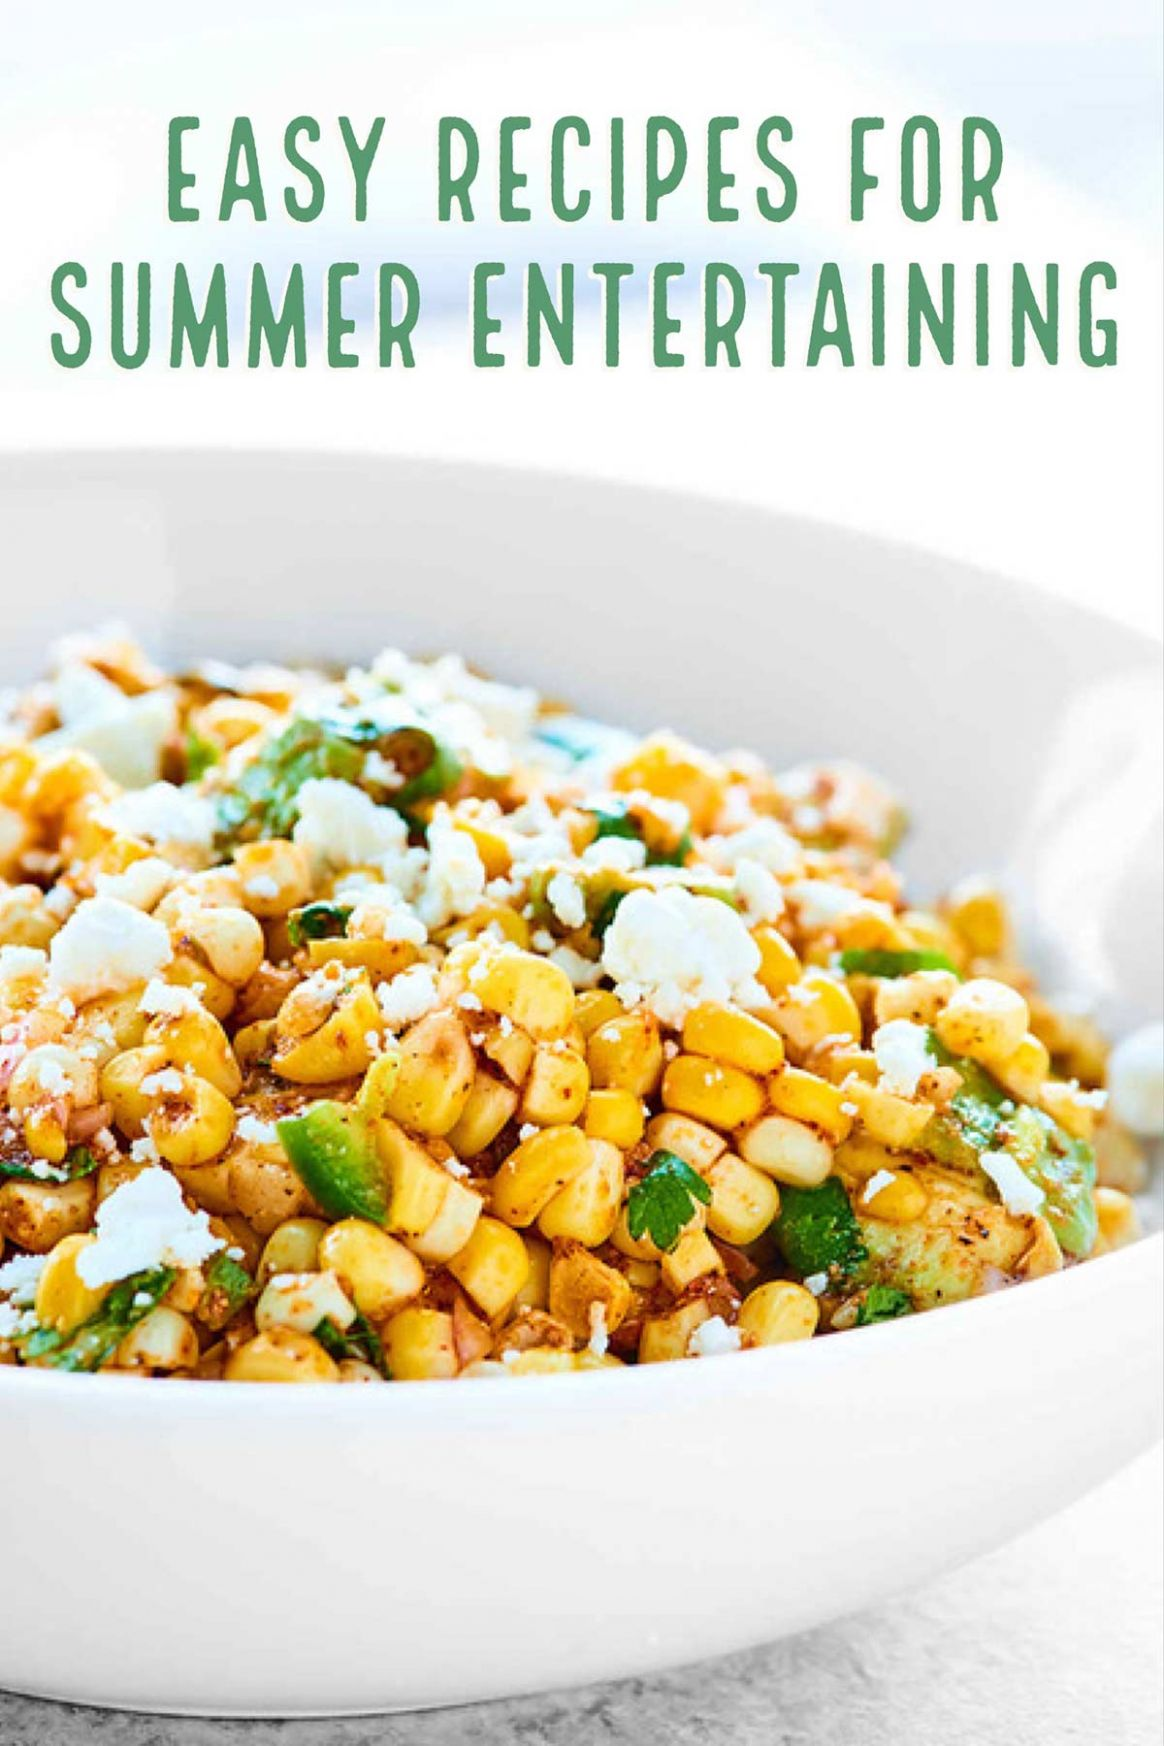 Easy Recipes for Summer Entertaining - Show Me the Yummy